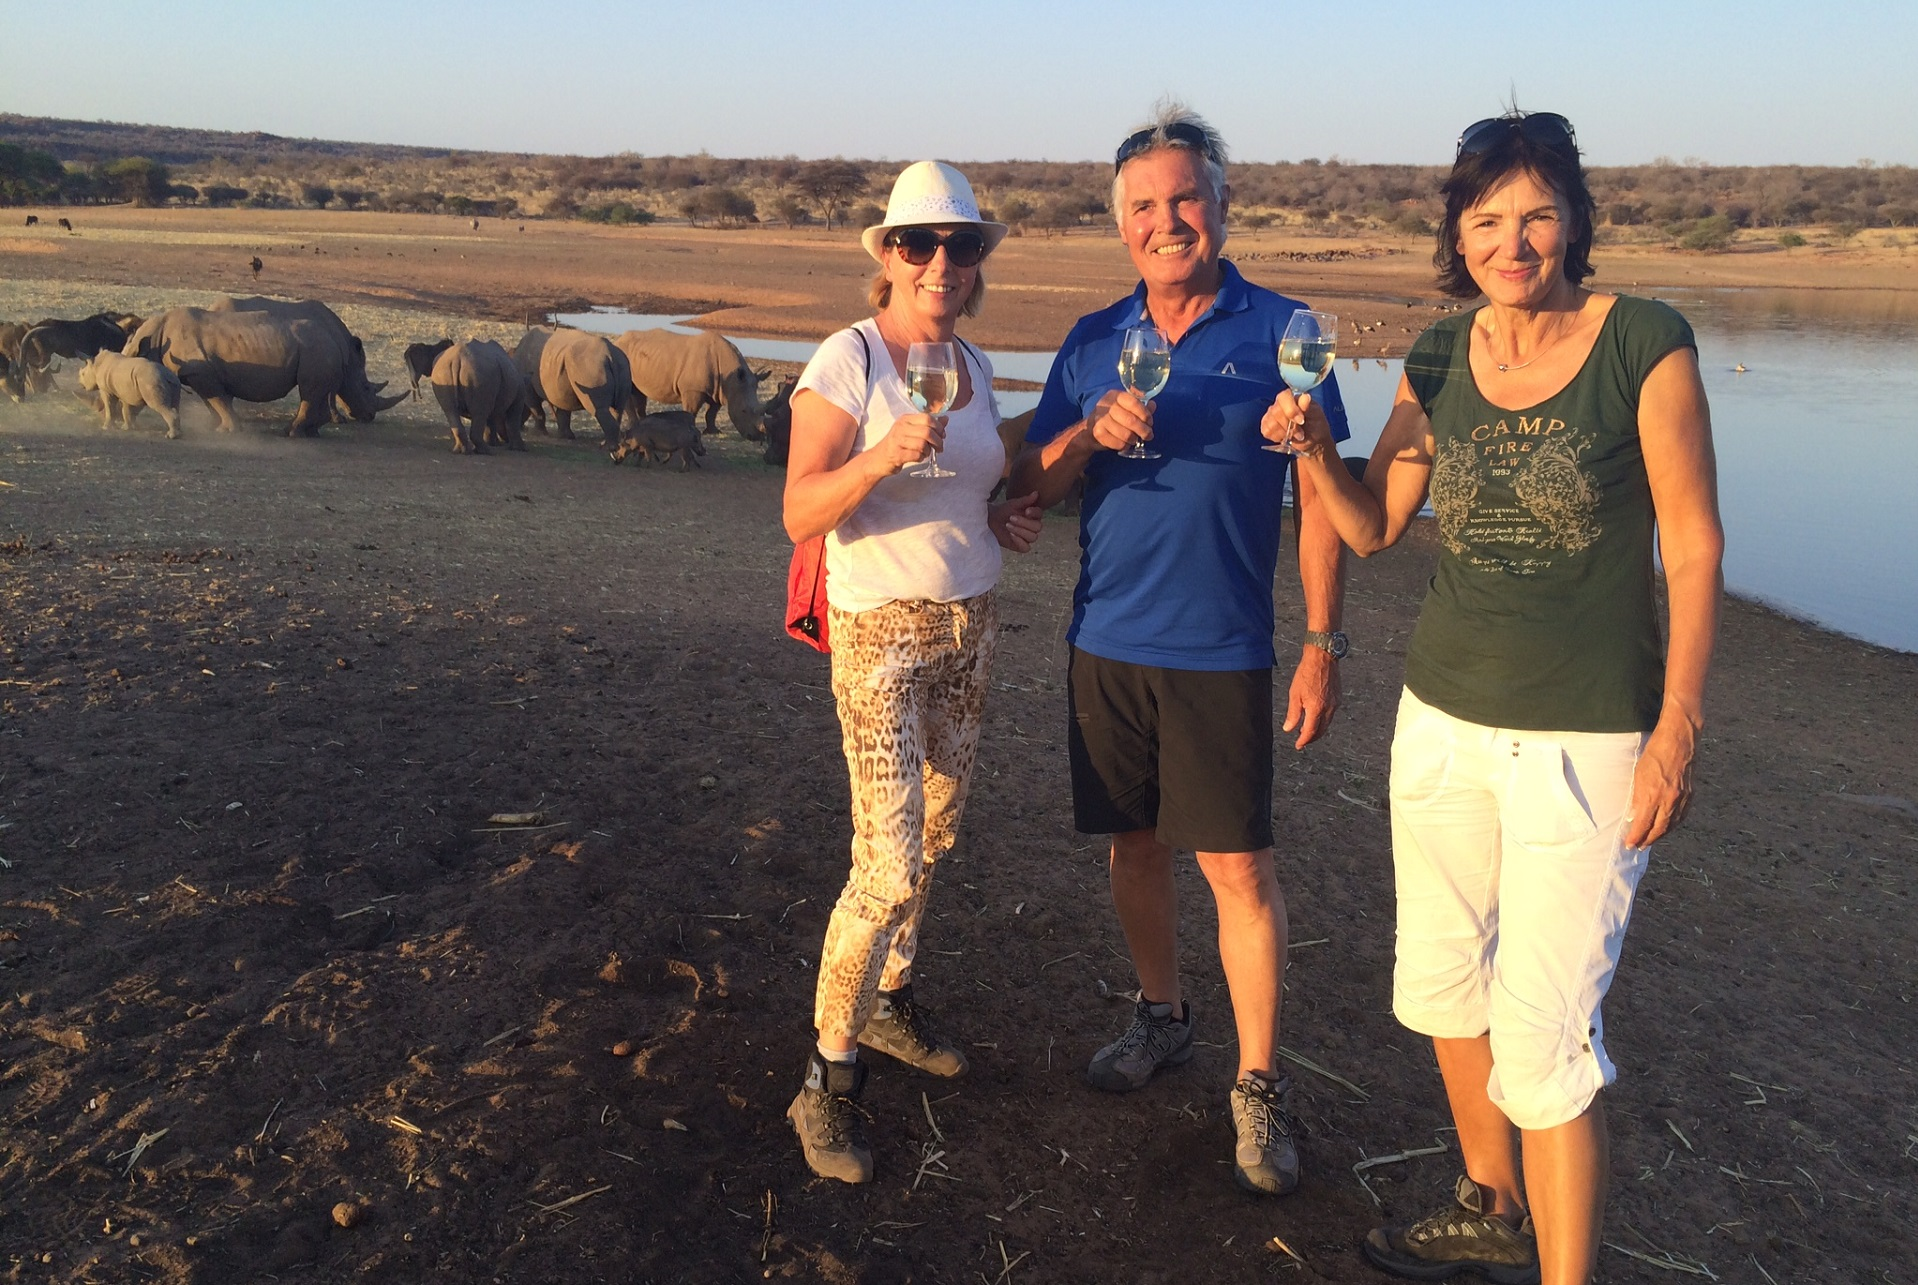 Clients Fae in Namibia on their self-drive tour